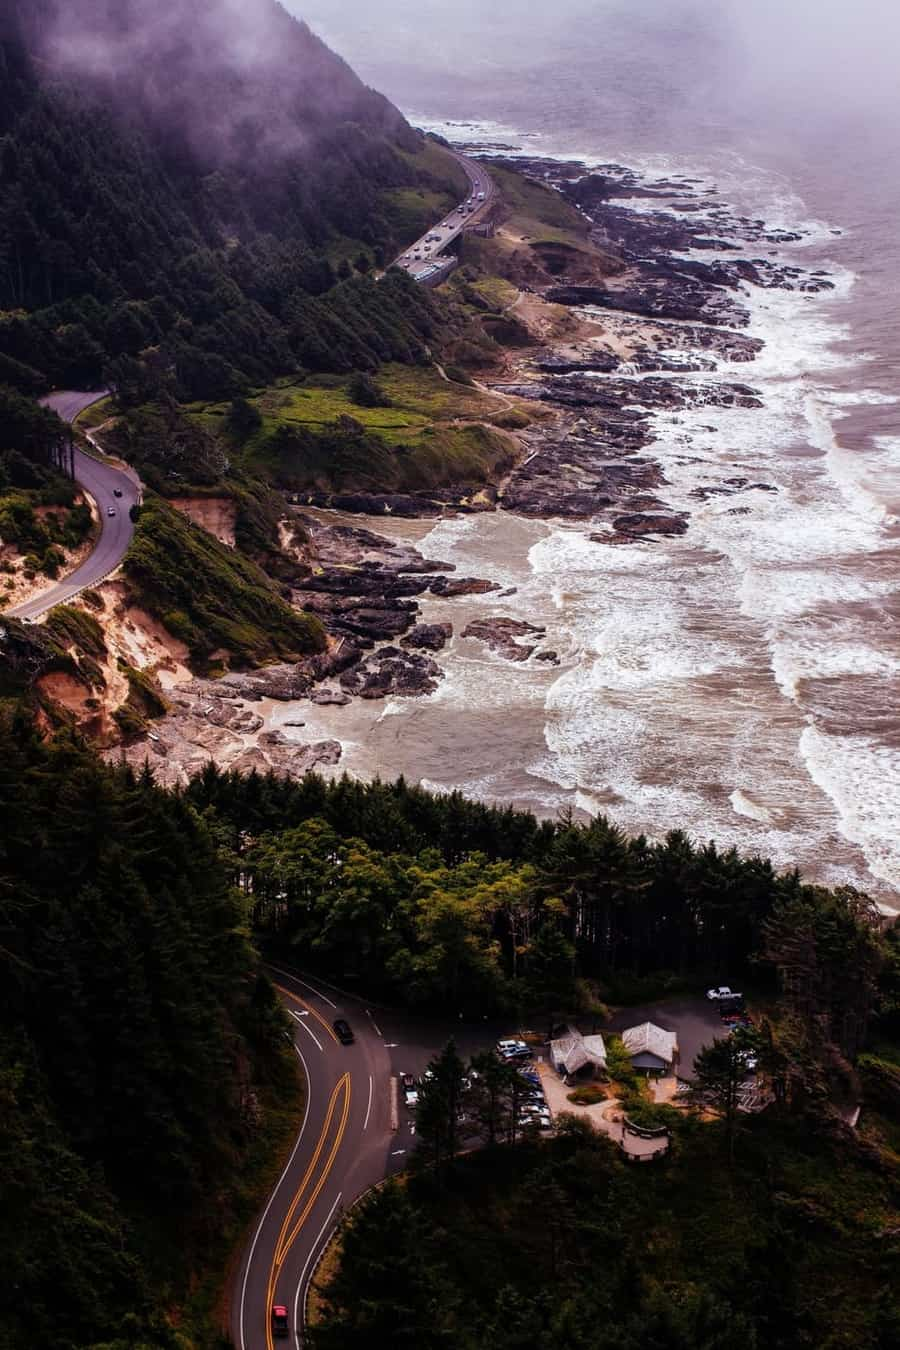 Cape Perpetua Overlook, Oregon, Best U.S Driving roads, Road trip Ideas.